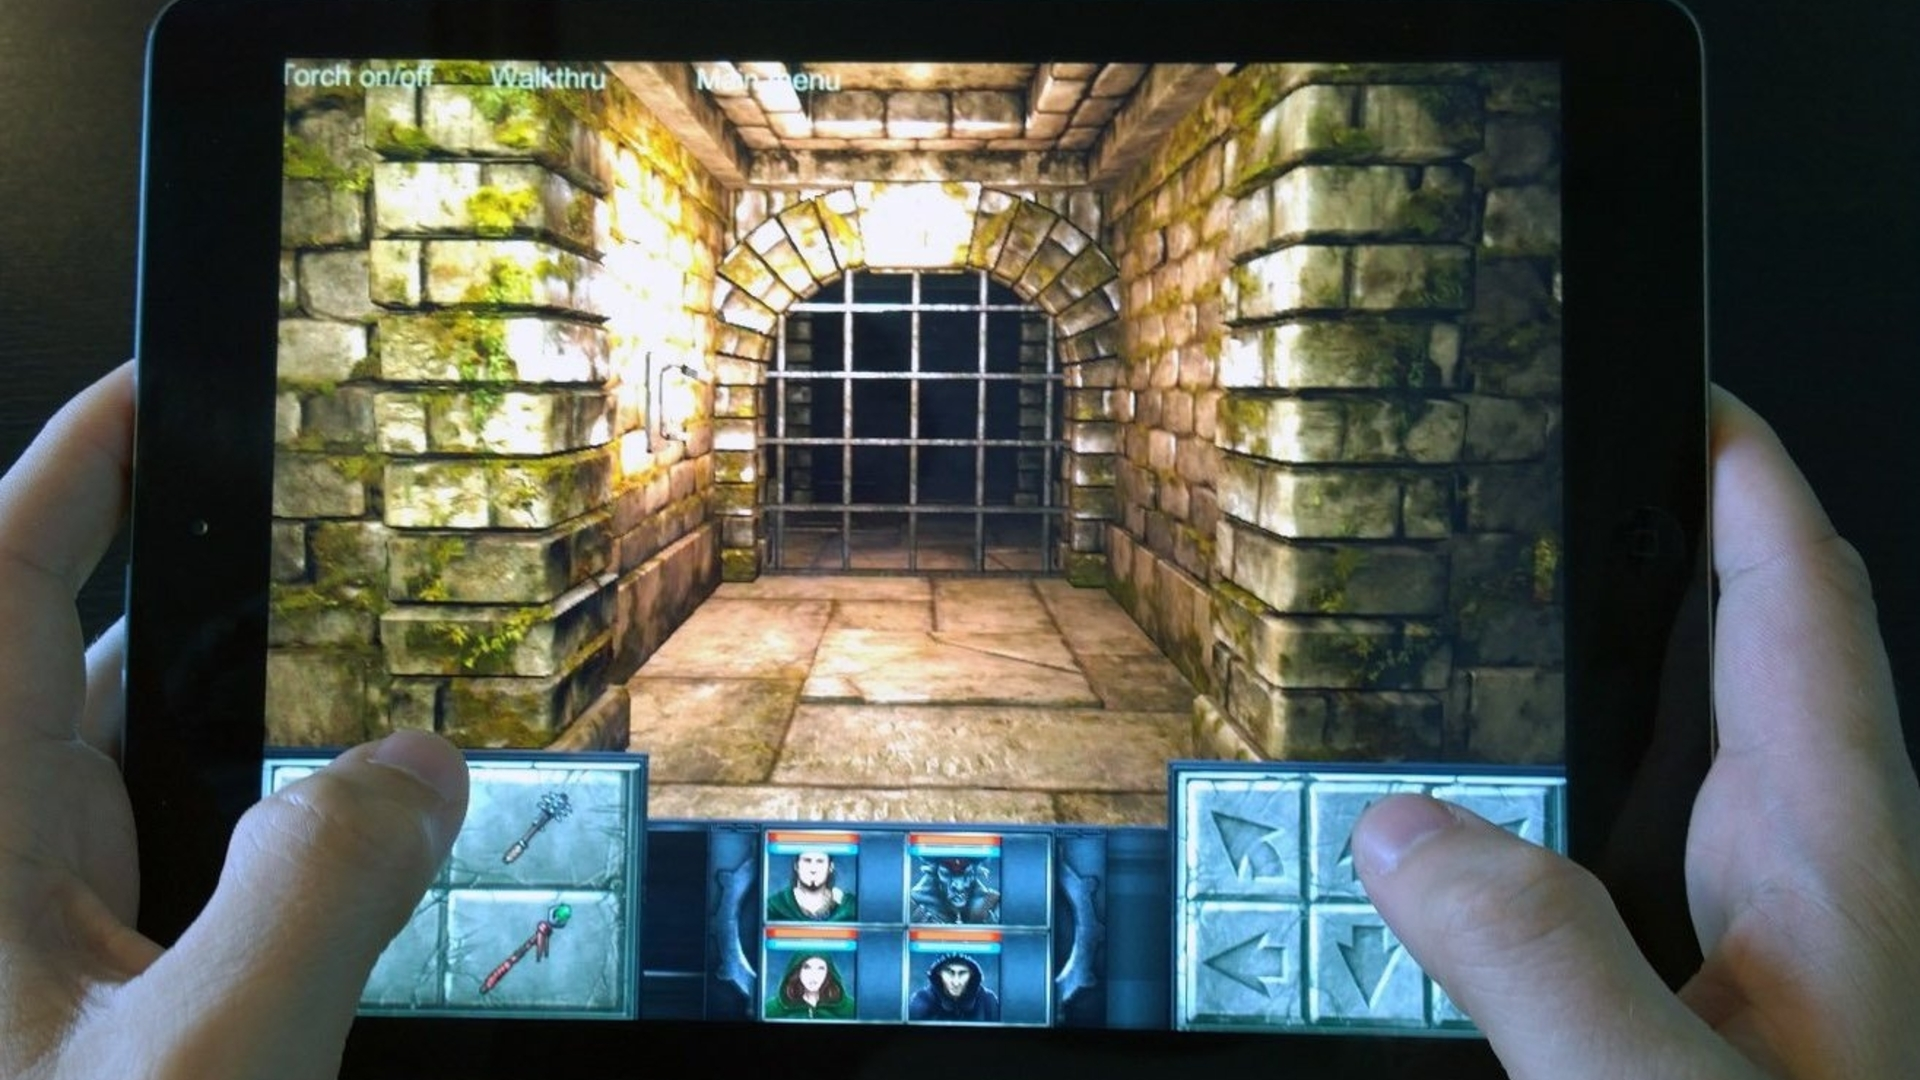 Legend of Grimrock is coming to iOS